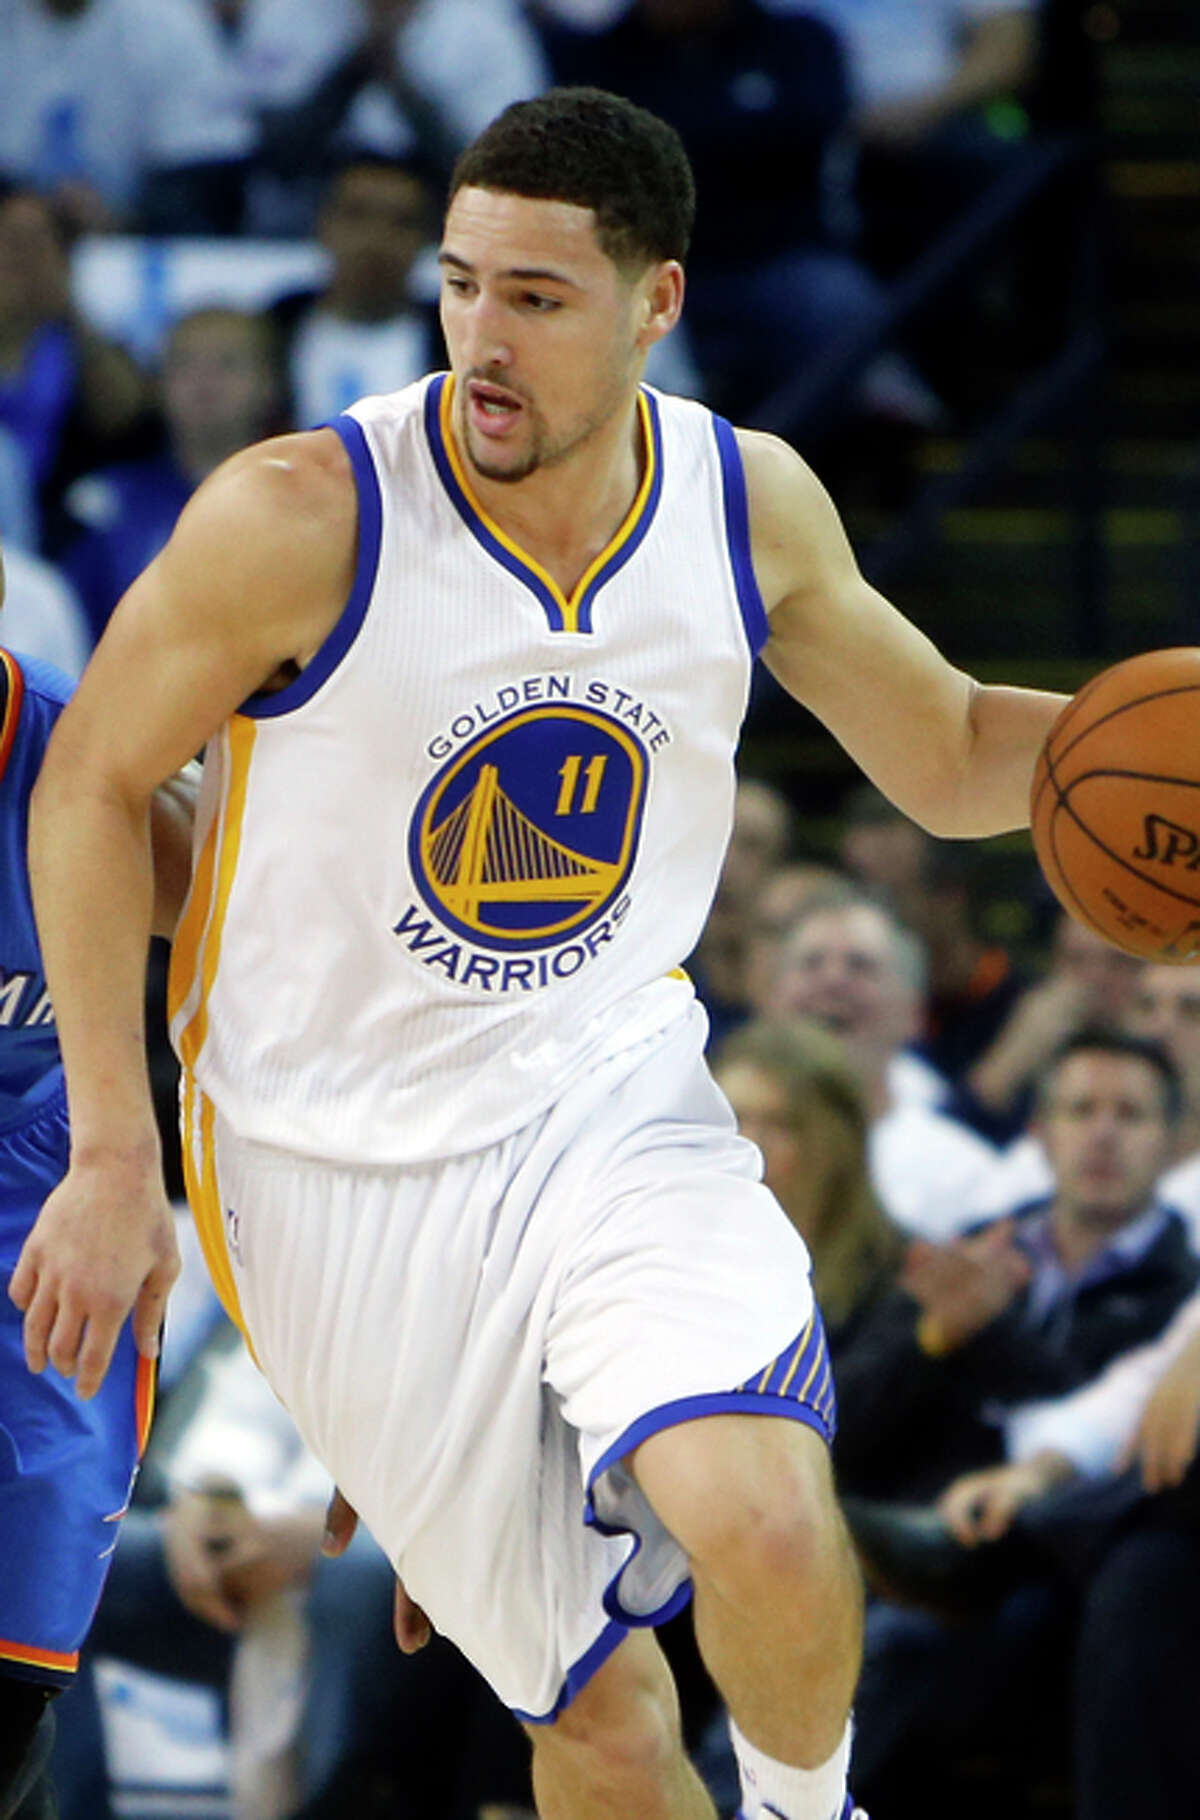 Golden State Warriors' Klay Thompson during 117-91 win over the Oklahoma City Thunder in NBA game at Oracle Arena in Oakland, Calif. on Monday, January 5, 2015.